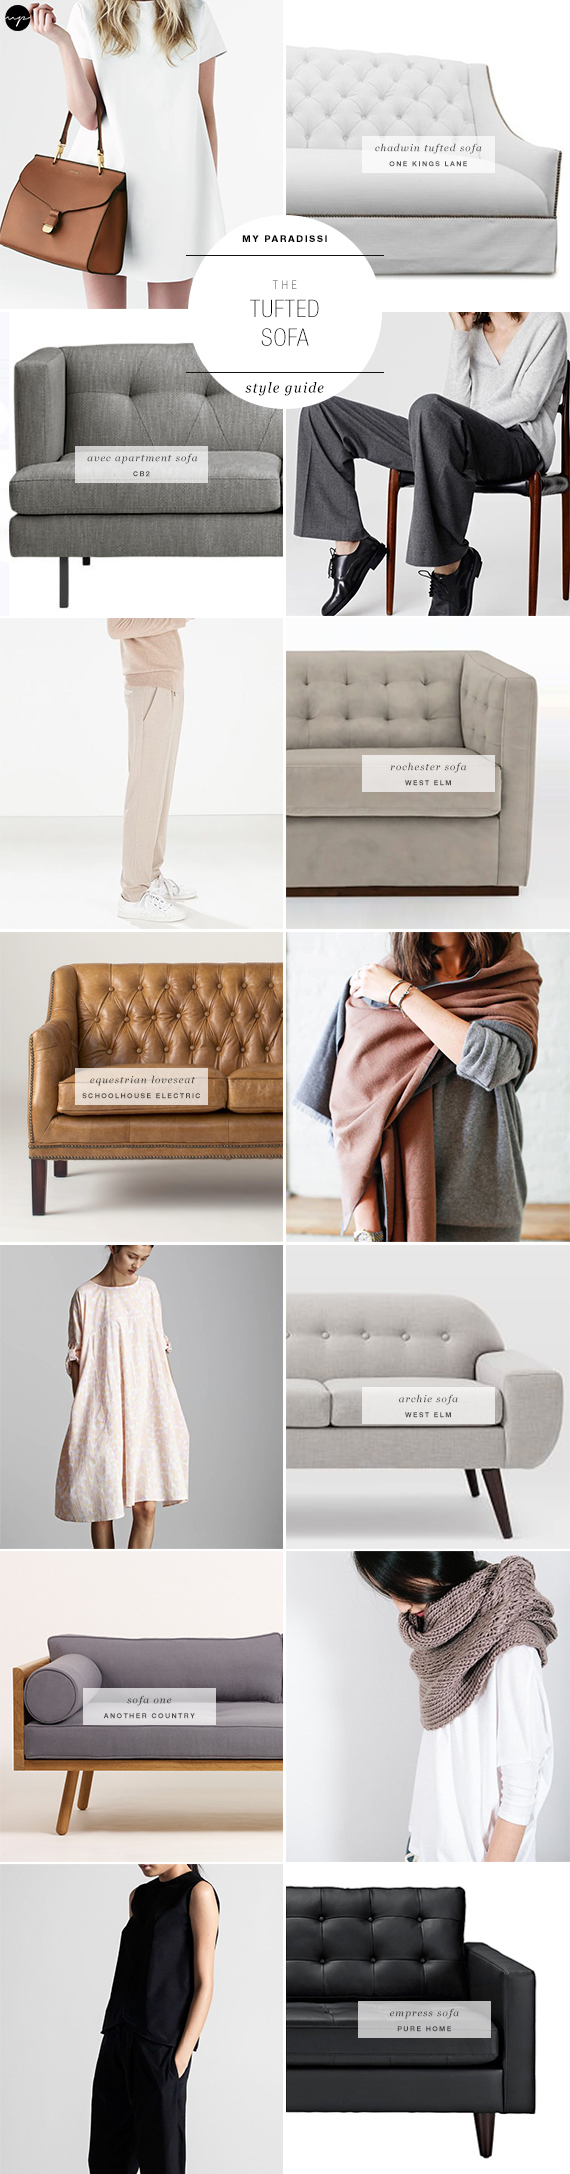 The tufted sofa style guide   My Paradissi